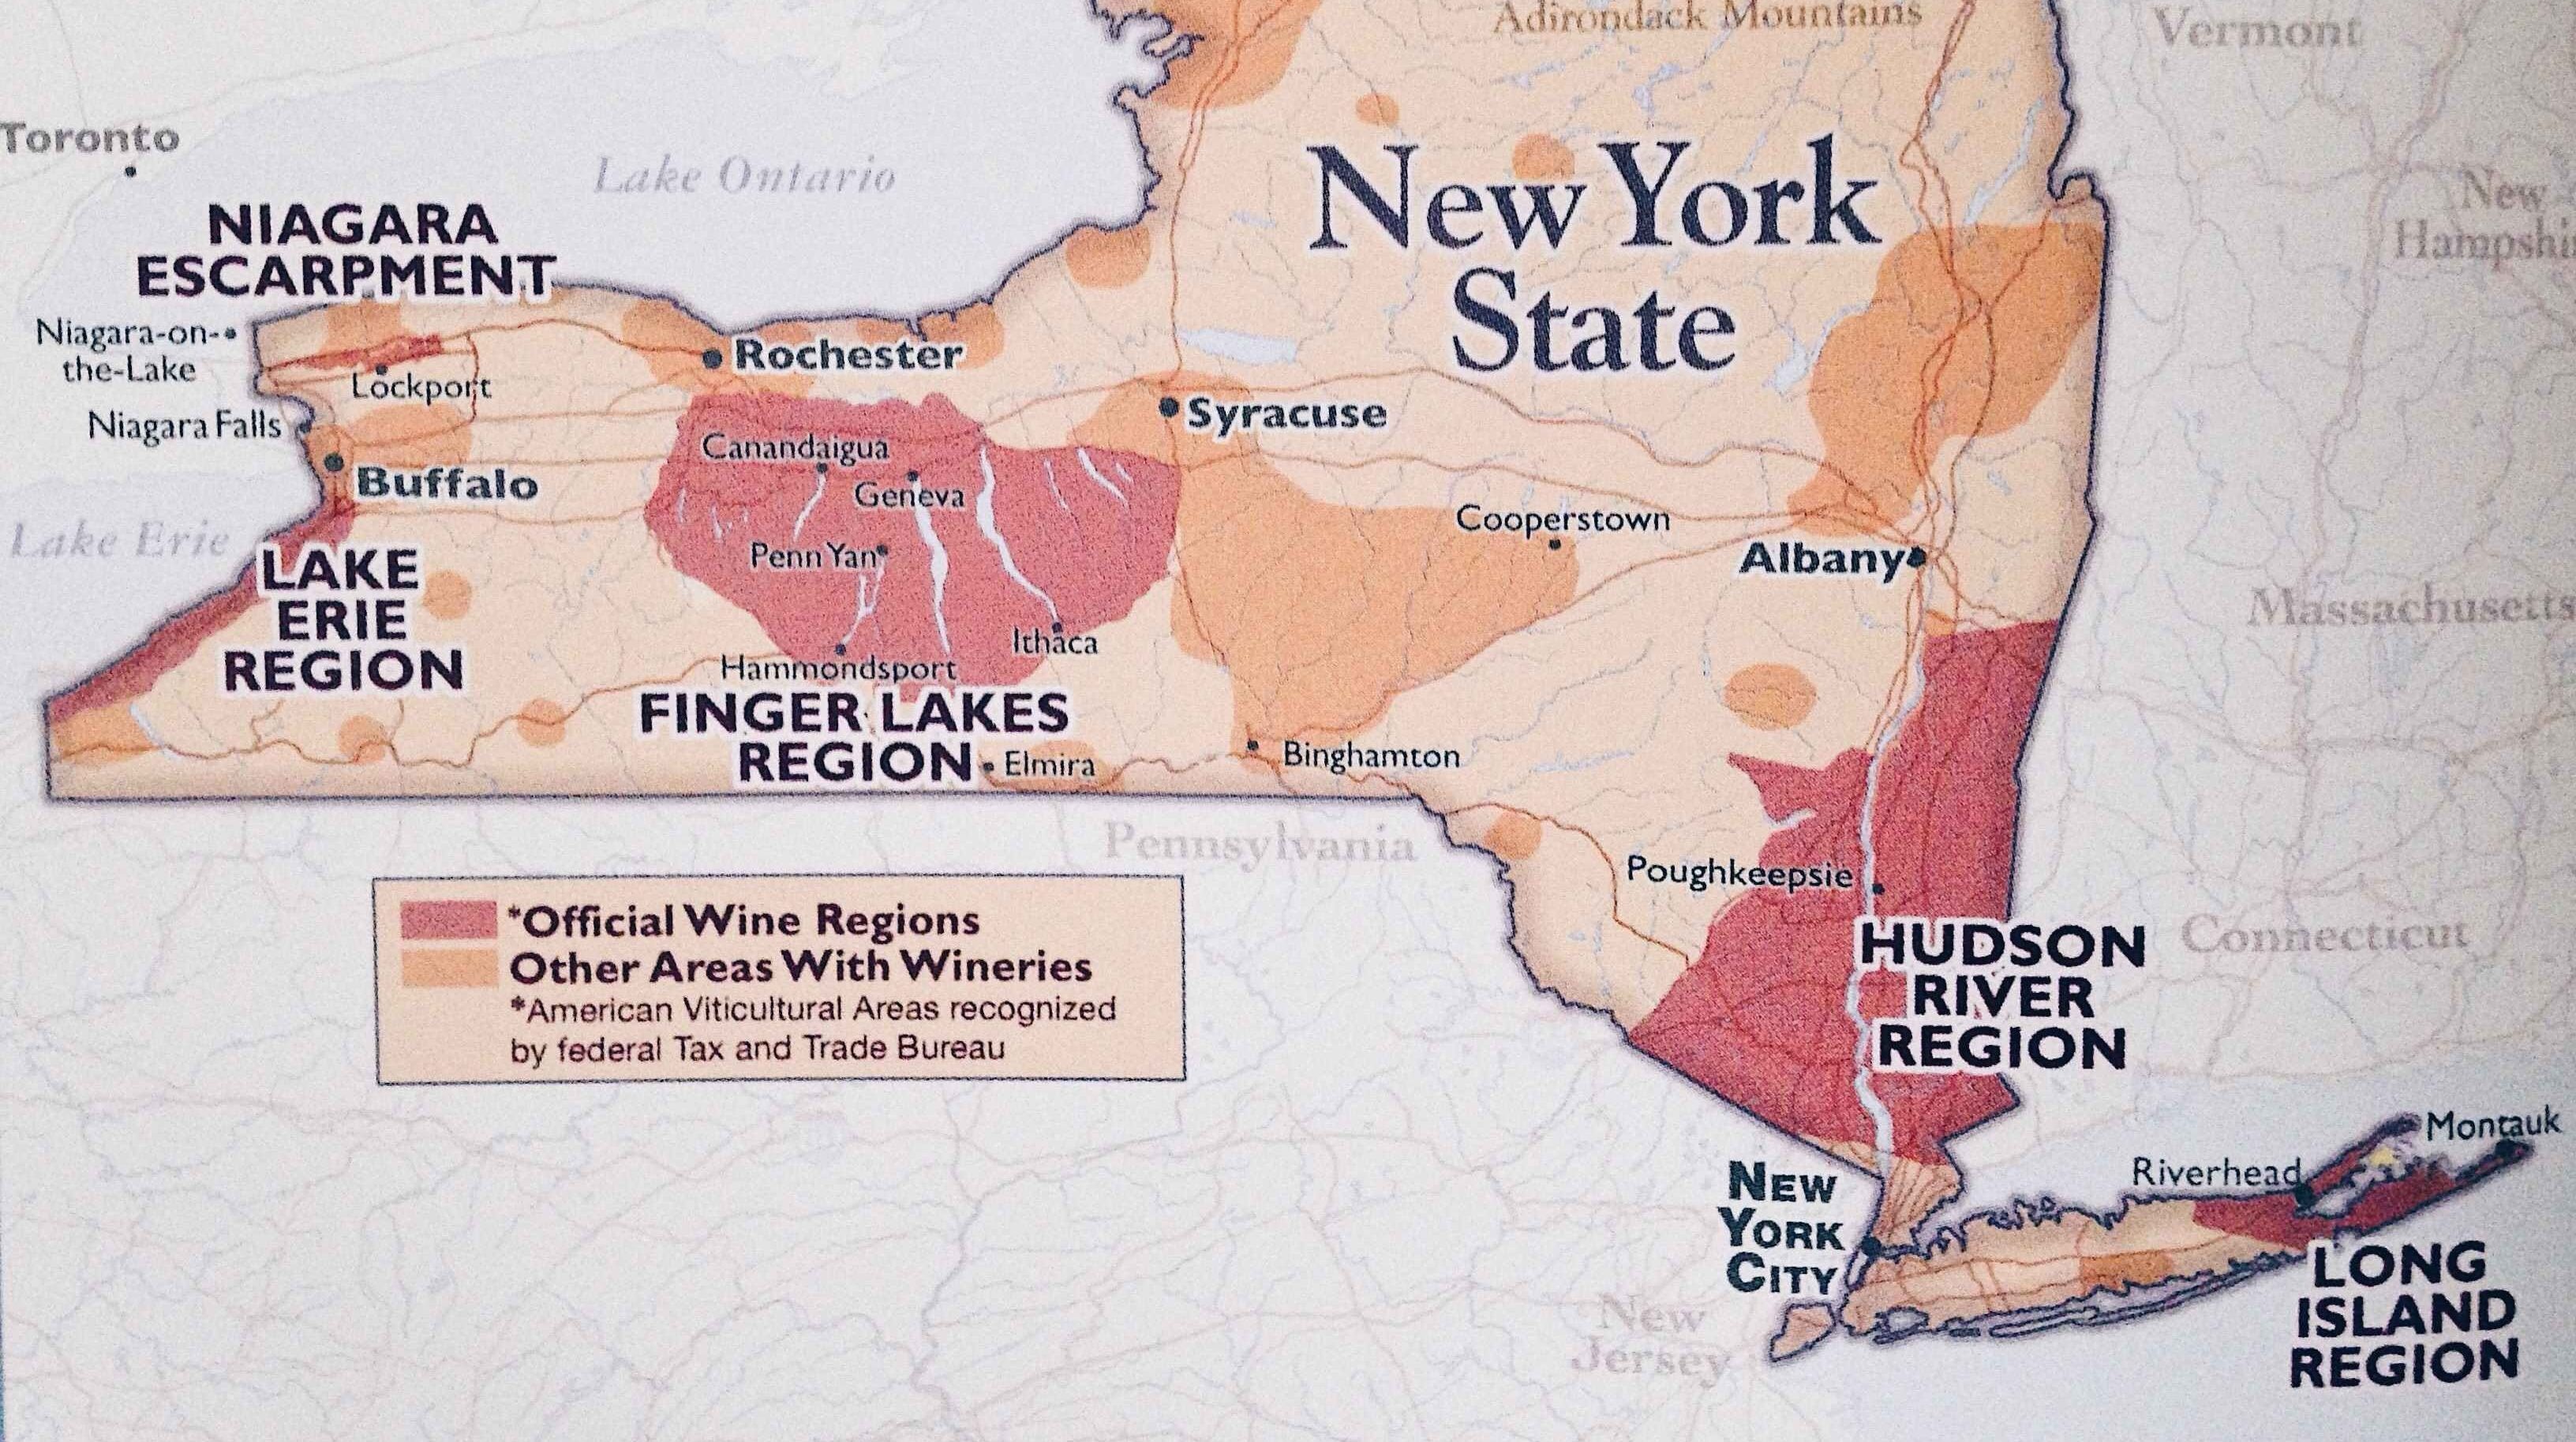 My Top 20 Favorite Wines from New York State - FORWINESAKE Keuka Lake Wineries Map on cayuga lake map, conesus lake contour map, keuka college map, lake michigan water depth map, owasco lake fishing map, honeoye lake map, napa valley wineries map, lake ontario wineries map, seneca lake wineries map, chautauqua wineries map, canandaigua lake wine trail map, lake erie wineries map, paso robles wineries map, owasco lake wineries map, finger lakes wineries map, nebraska wineries map, owasco lake depth map,